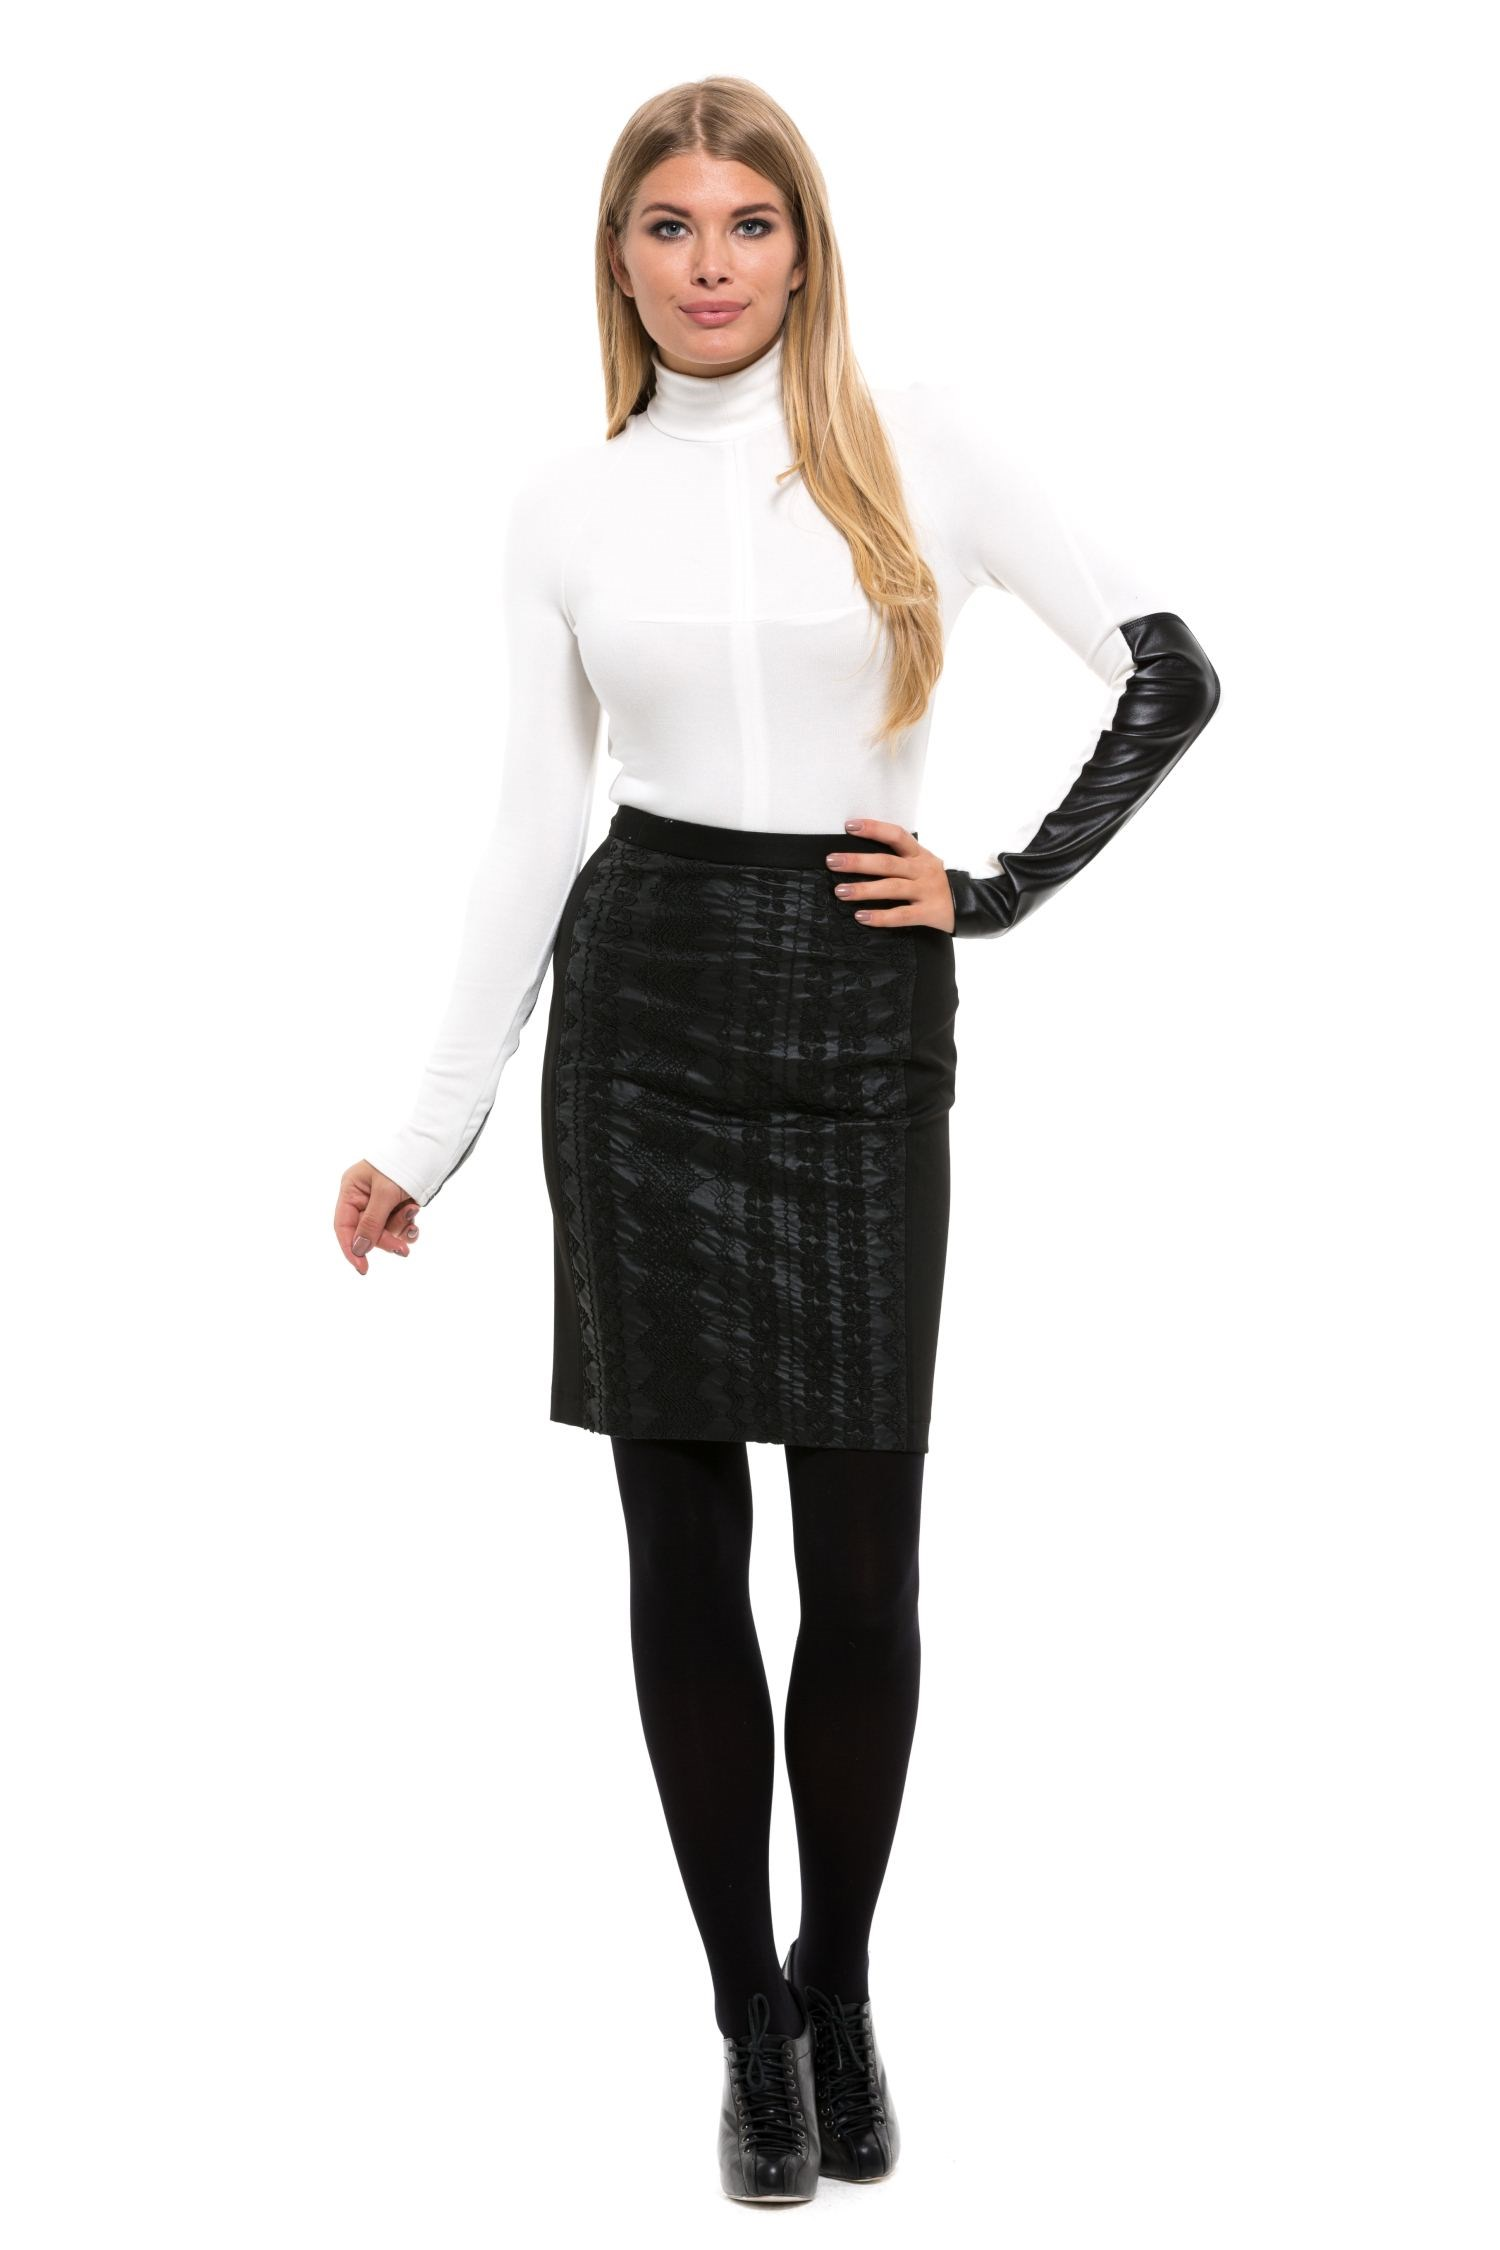 Skirt pencil knee-length and narrow Belt plaid pencil skirt